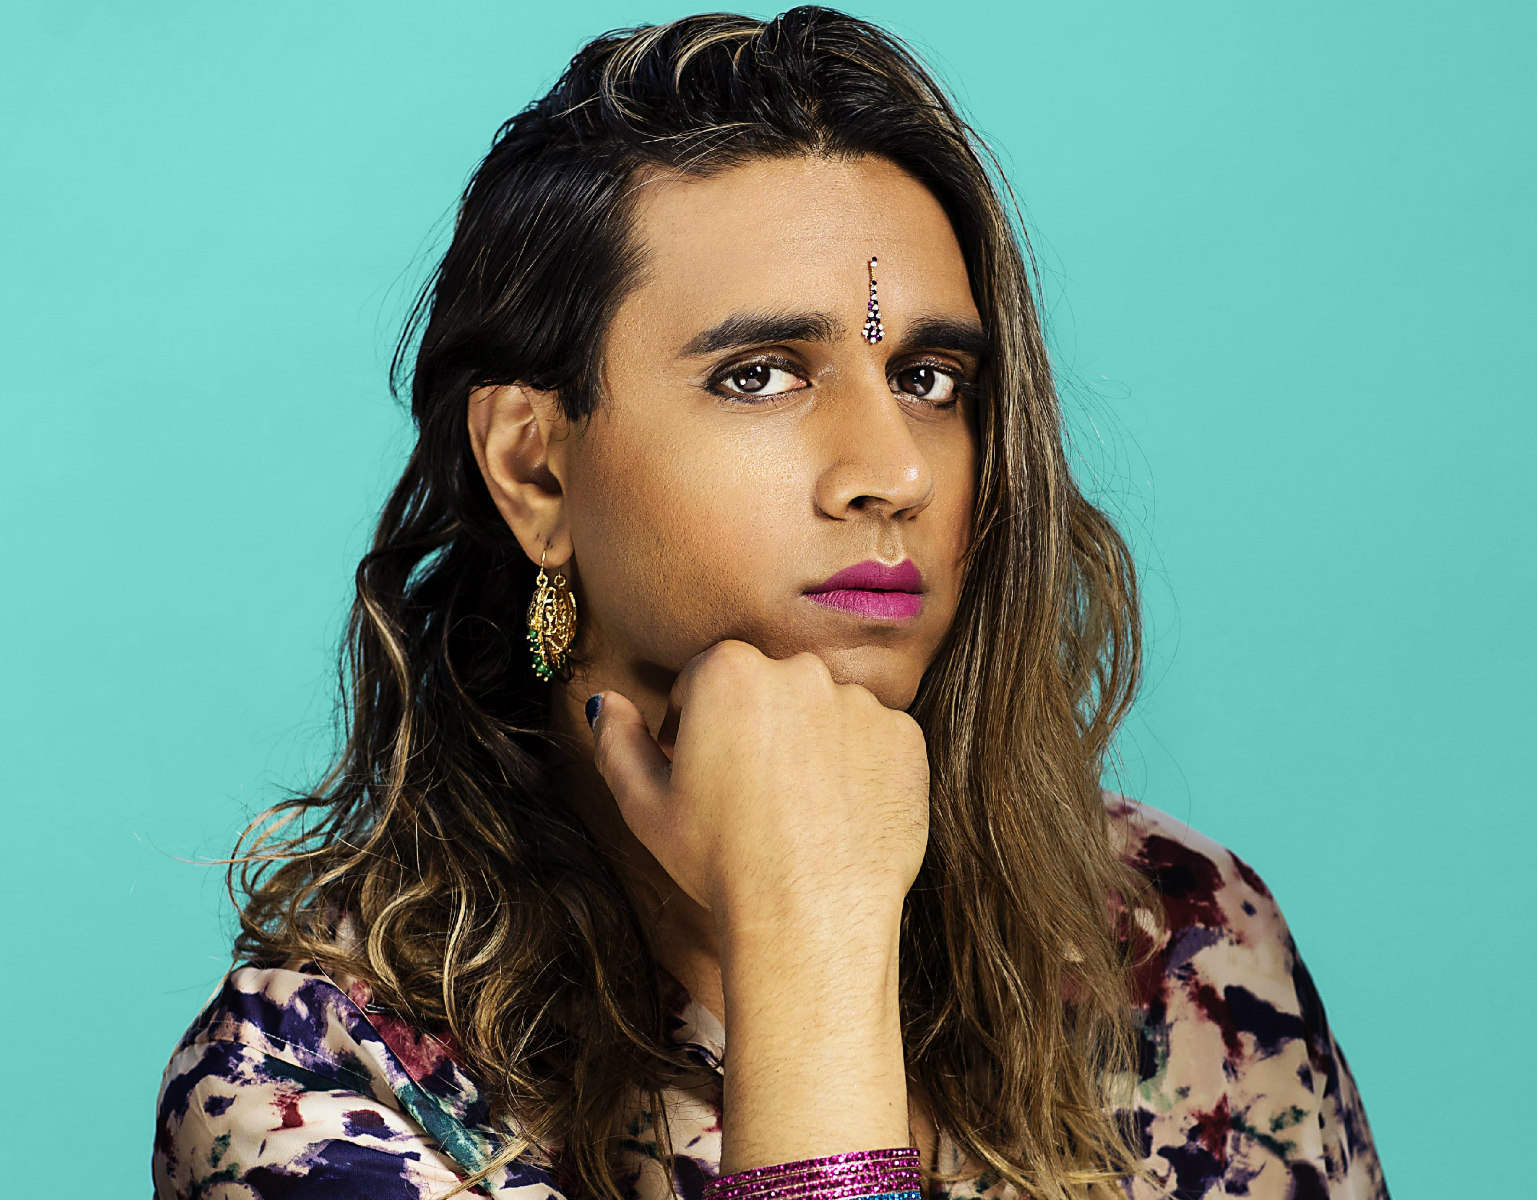 brownskinned woman with long brown hair with an arm on the table in front of a teal blue background